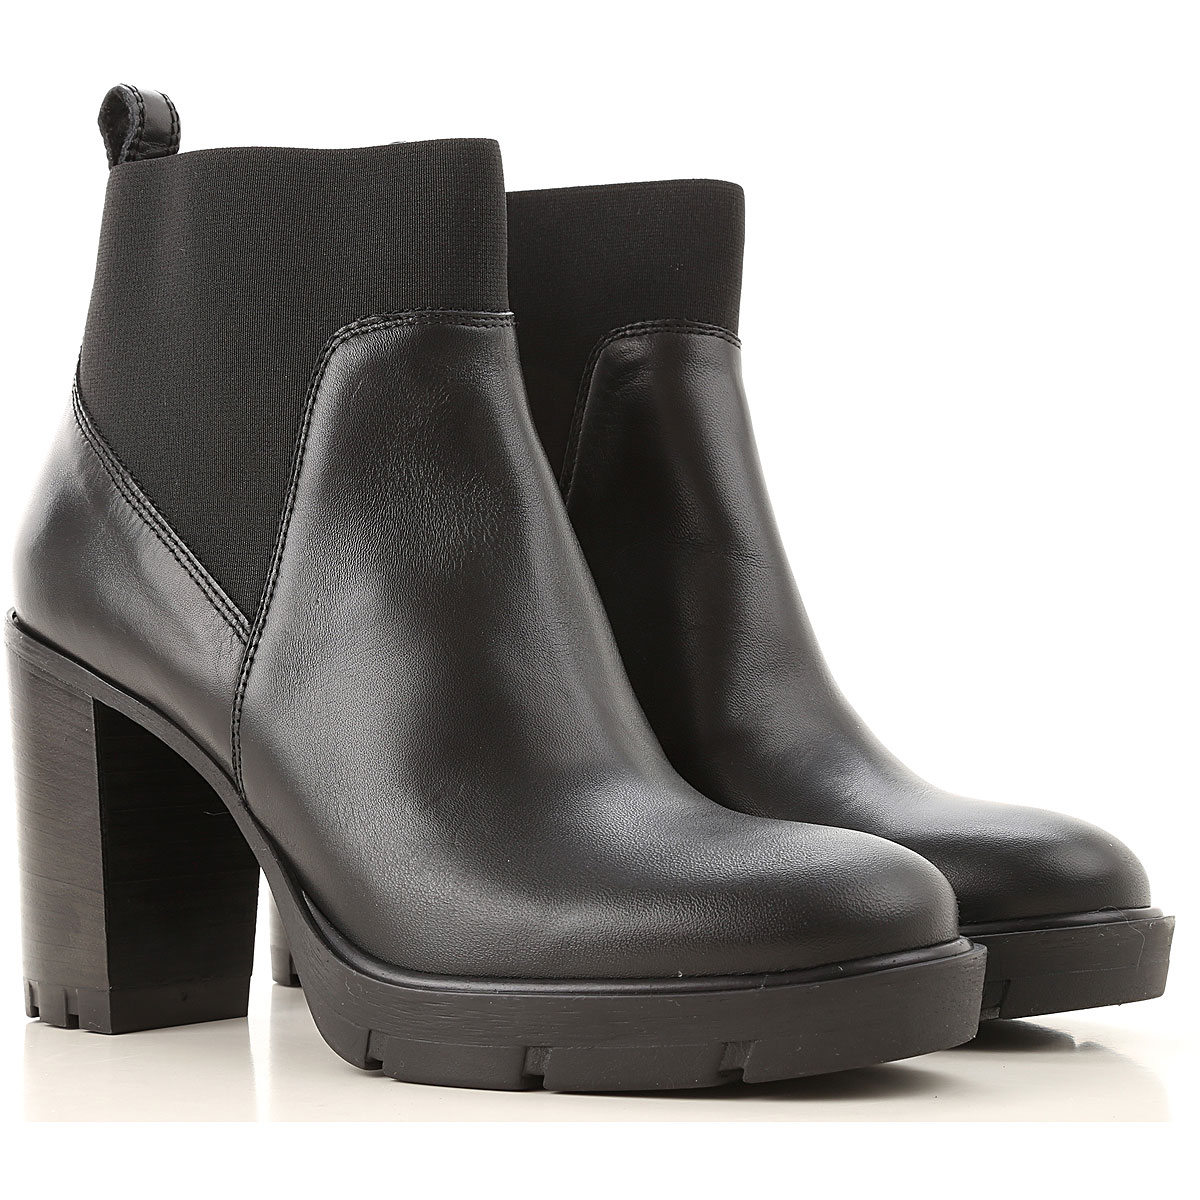 Janet & Janet Chelsea Boots for Women On Sale, Black, Leather, 2019, 10 5 6 7 8 9